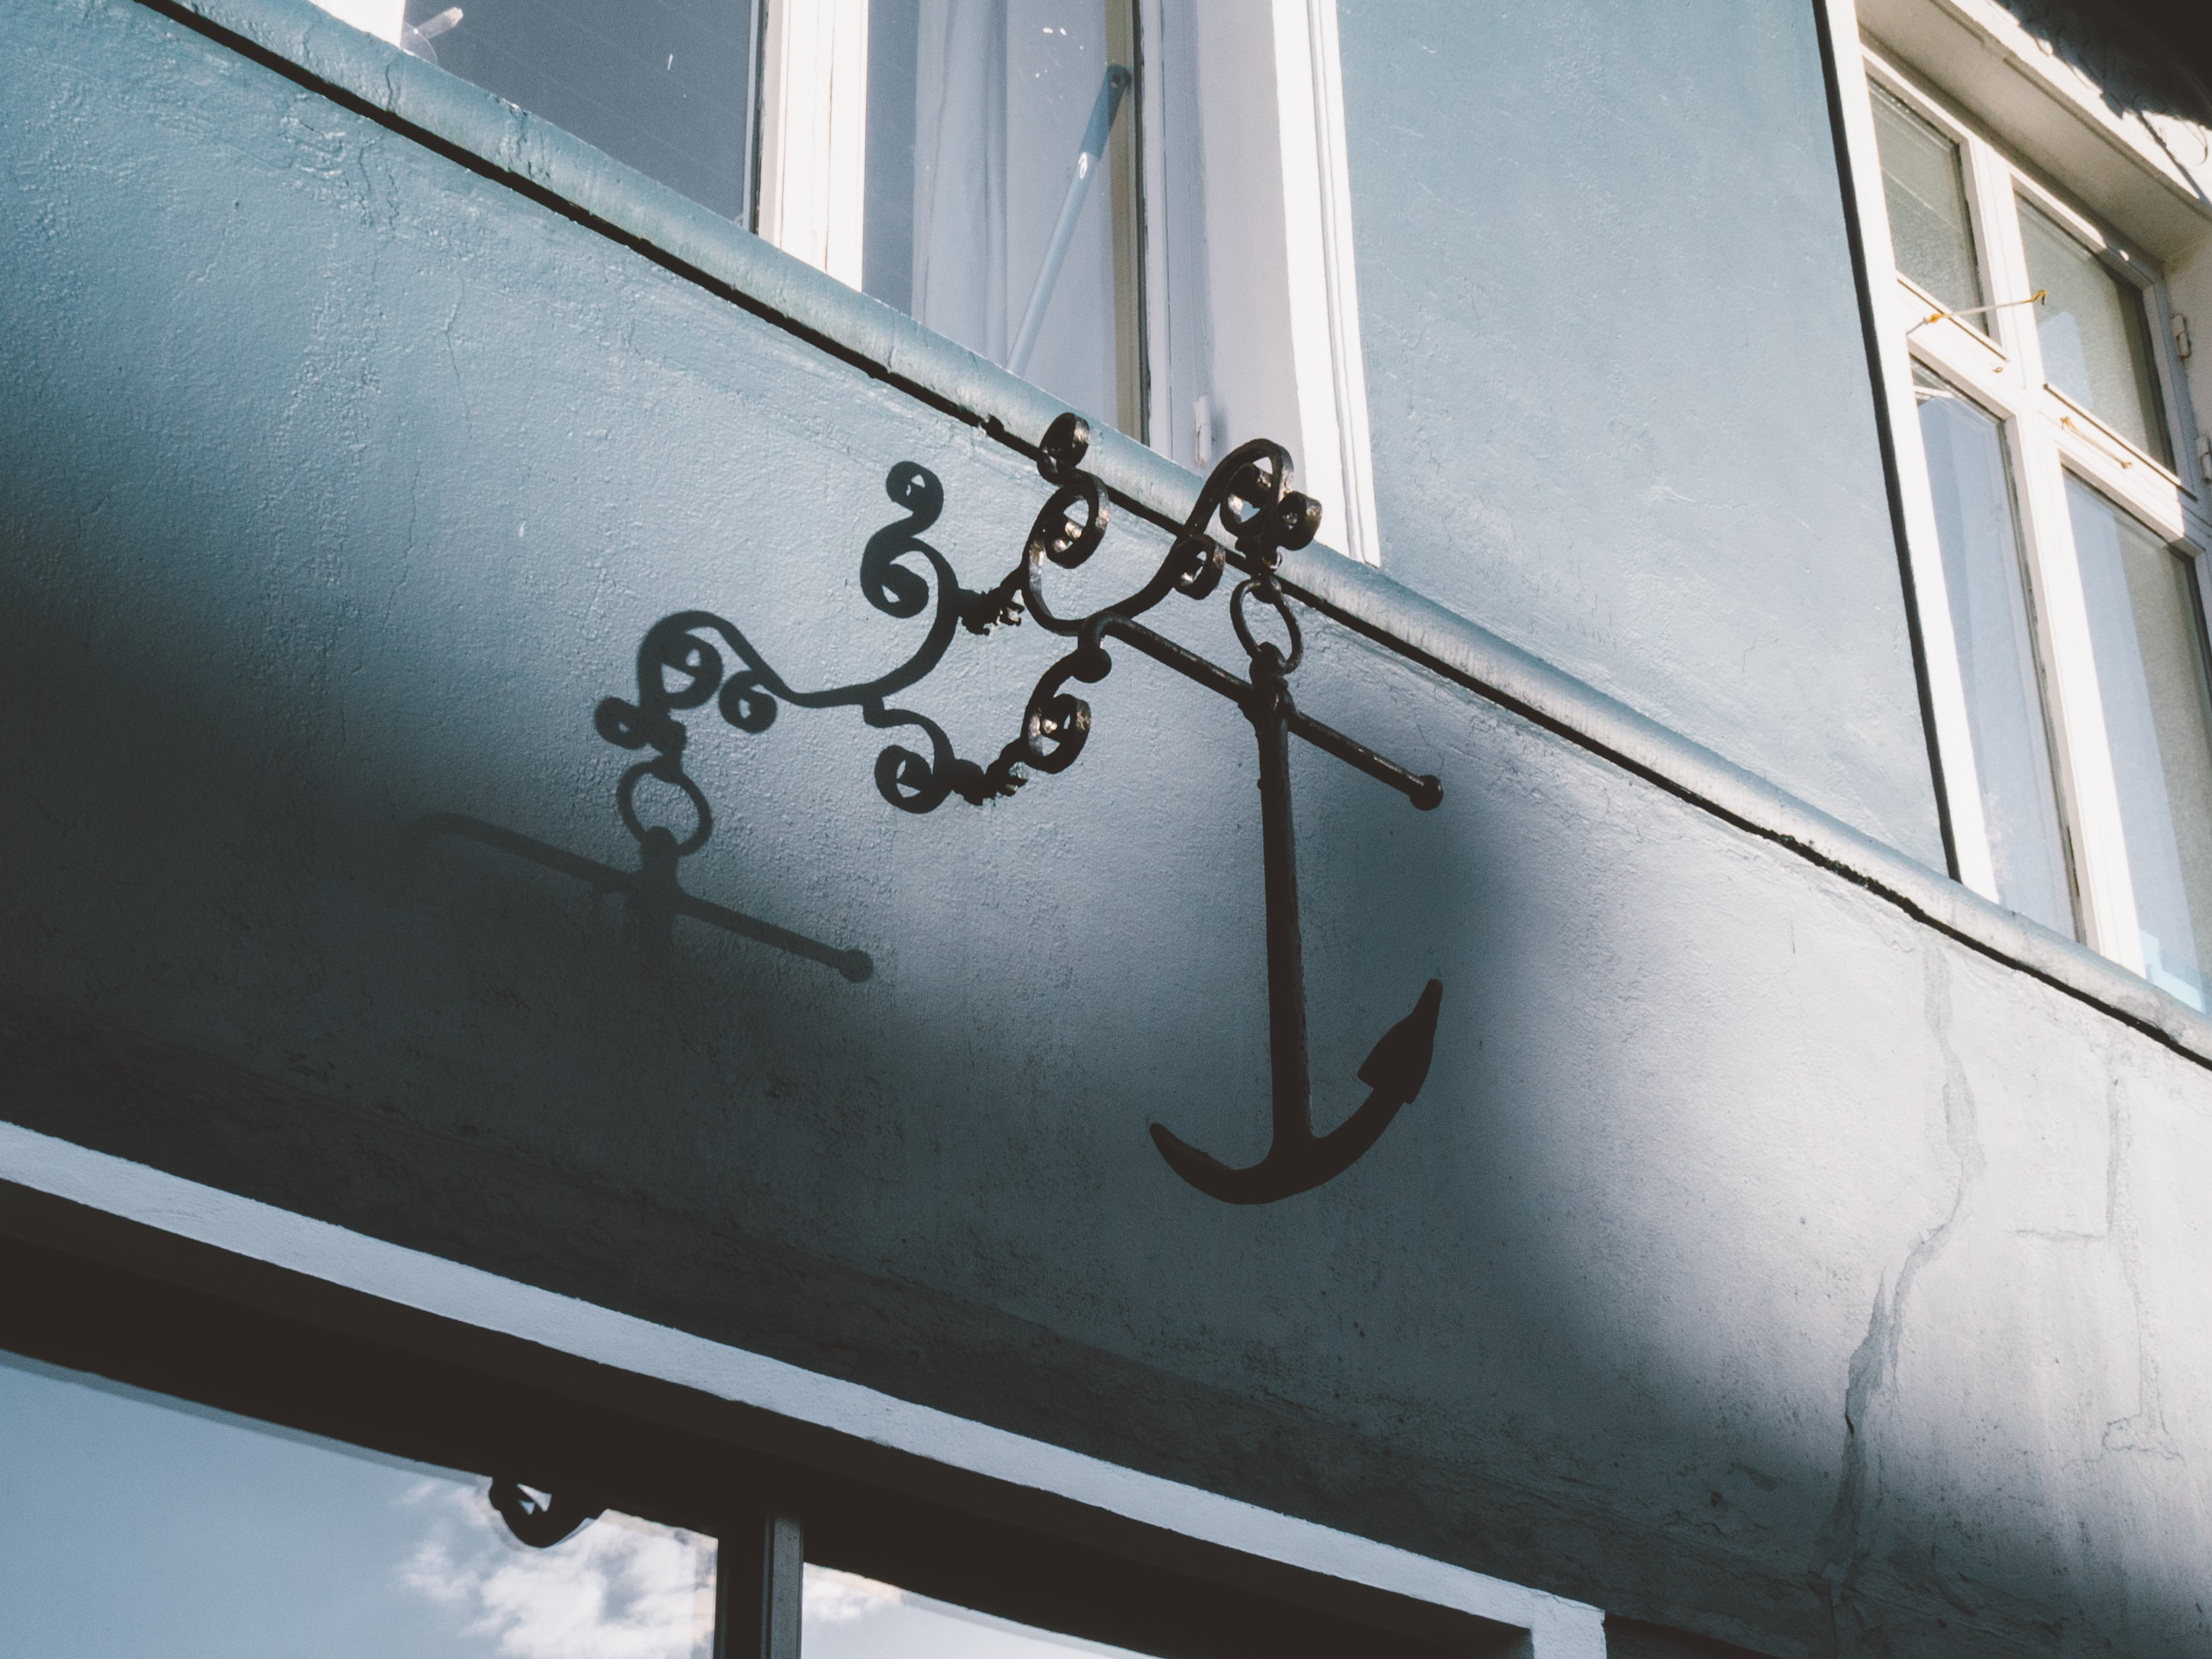 A steel anchor fixture on a blue building wall